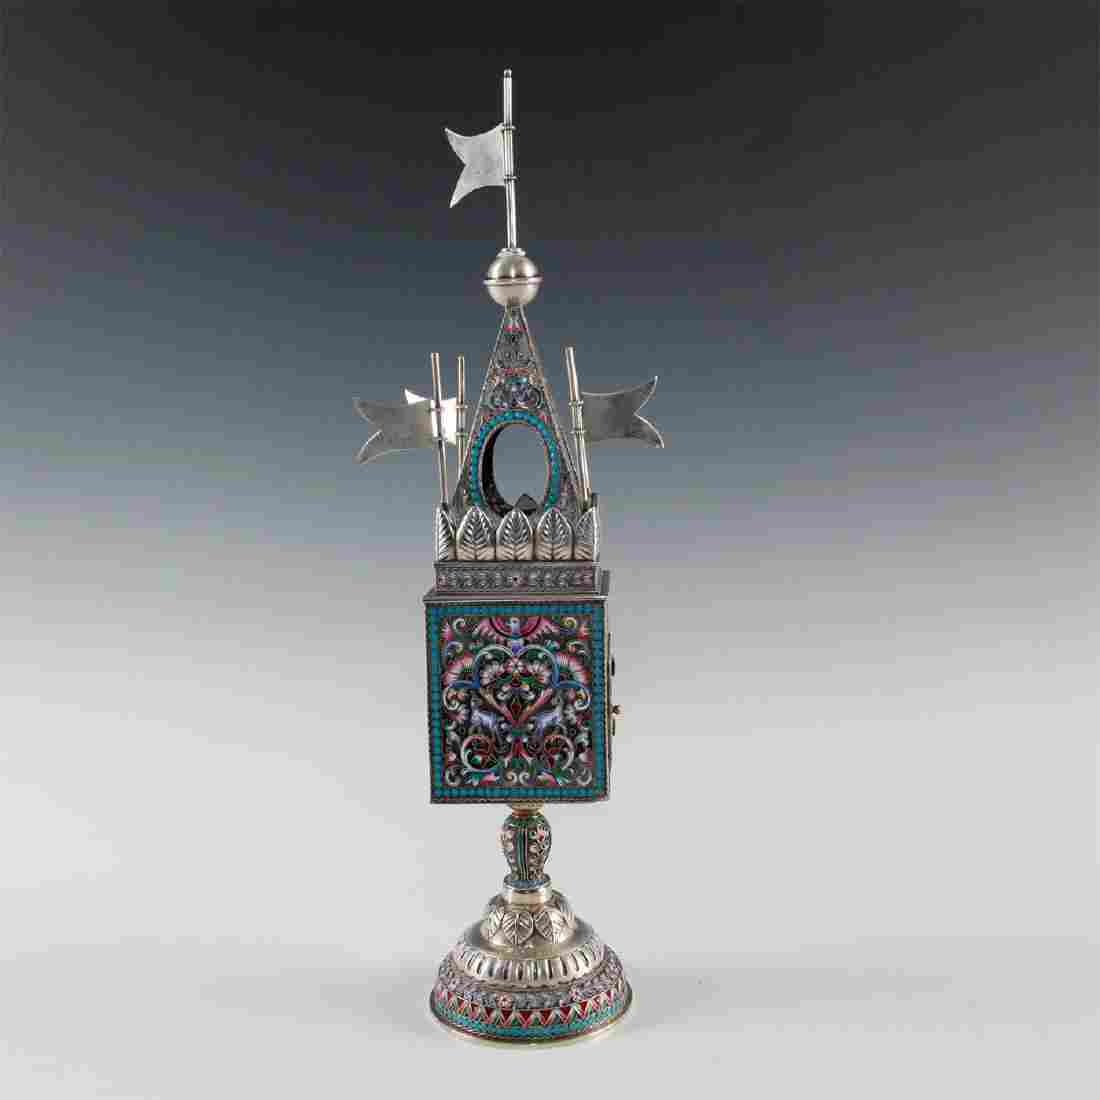 STERLING SILVER JUDAICA SPICE TOWER